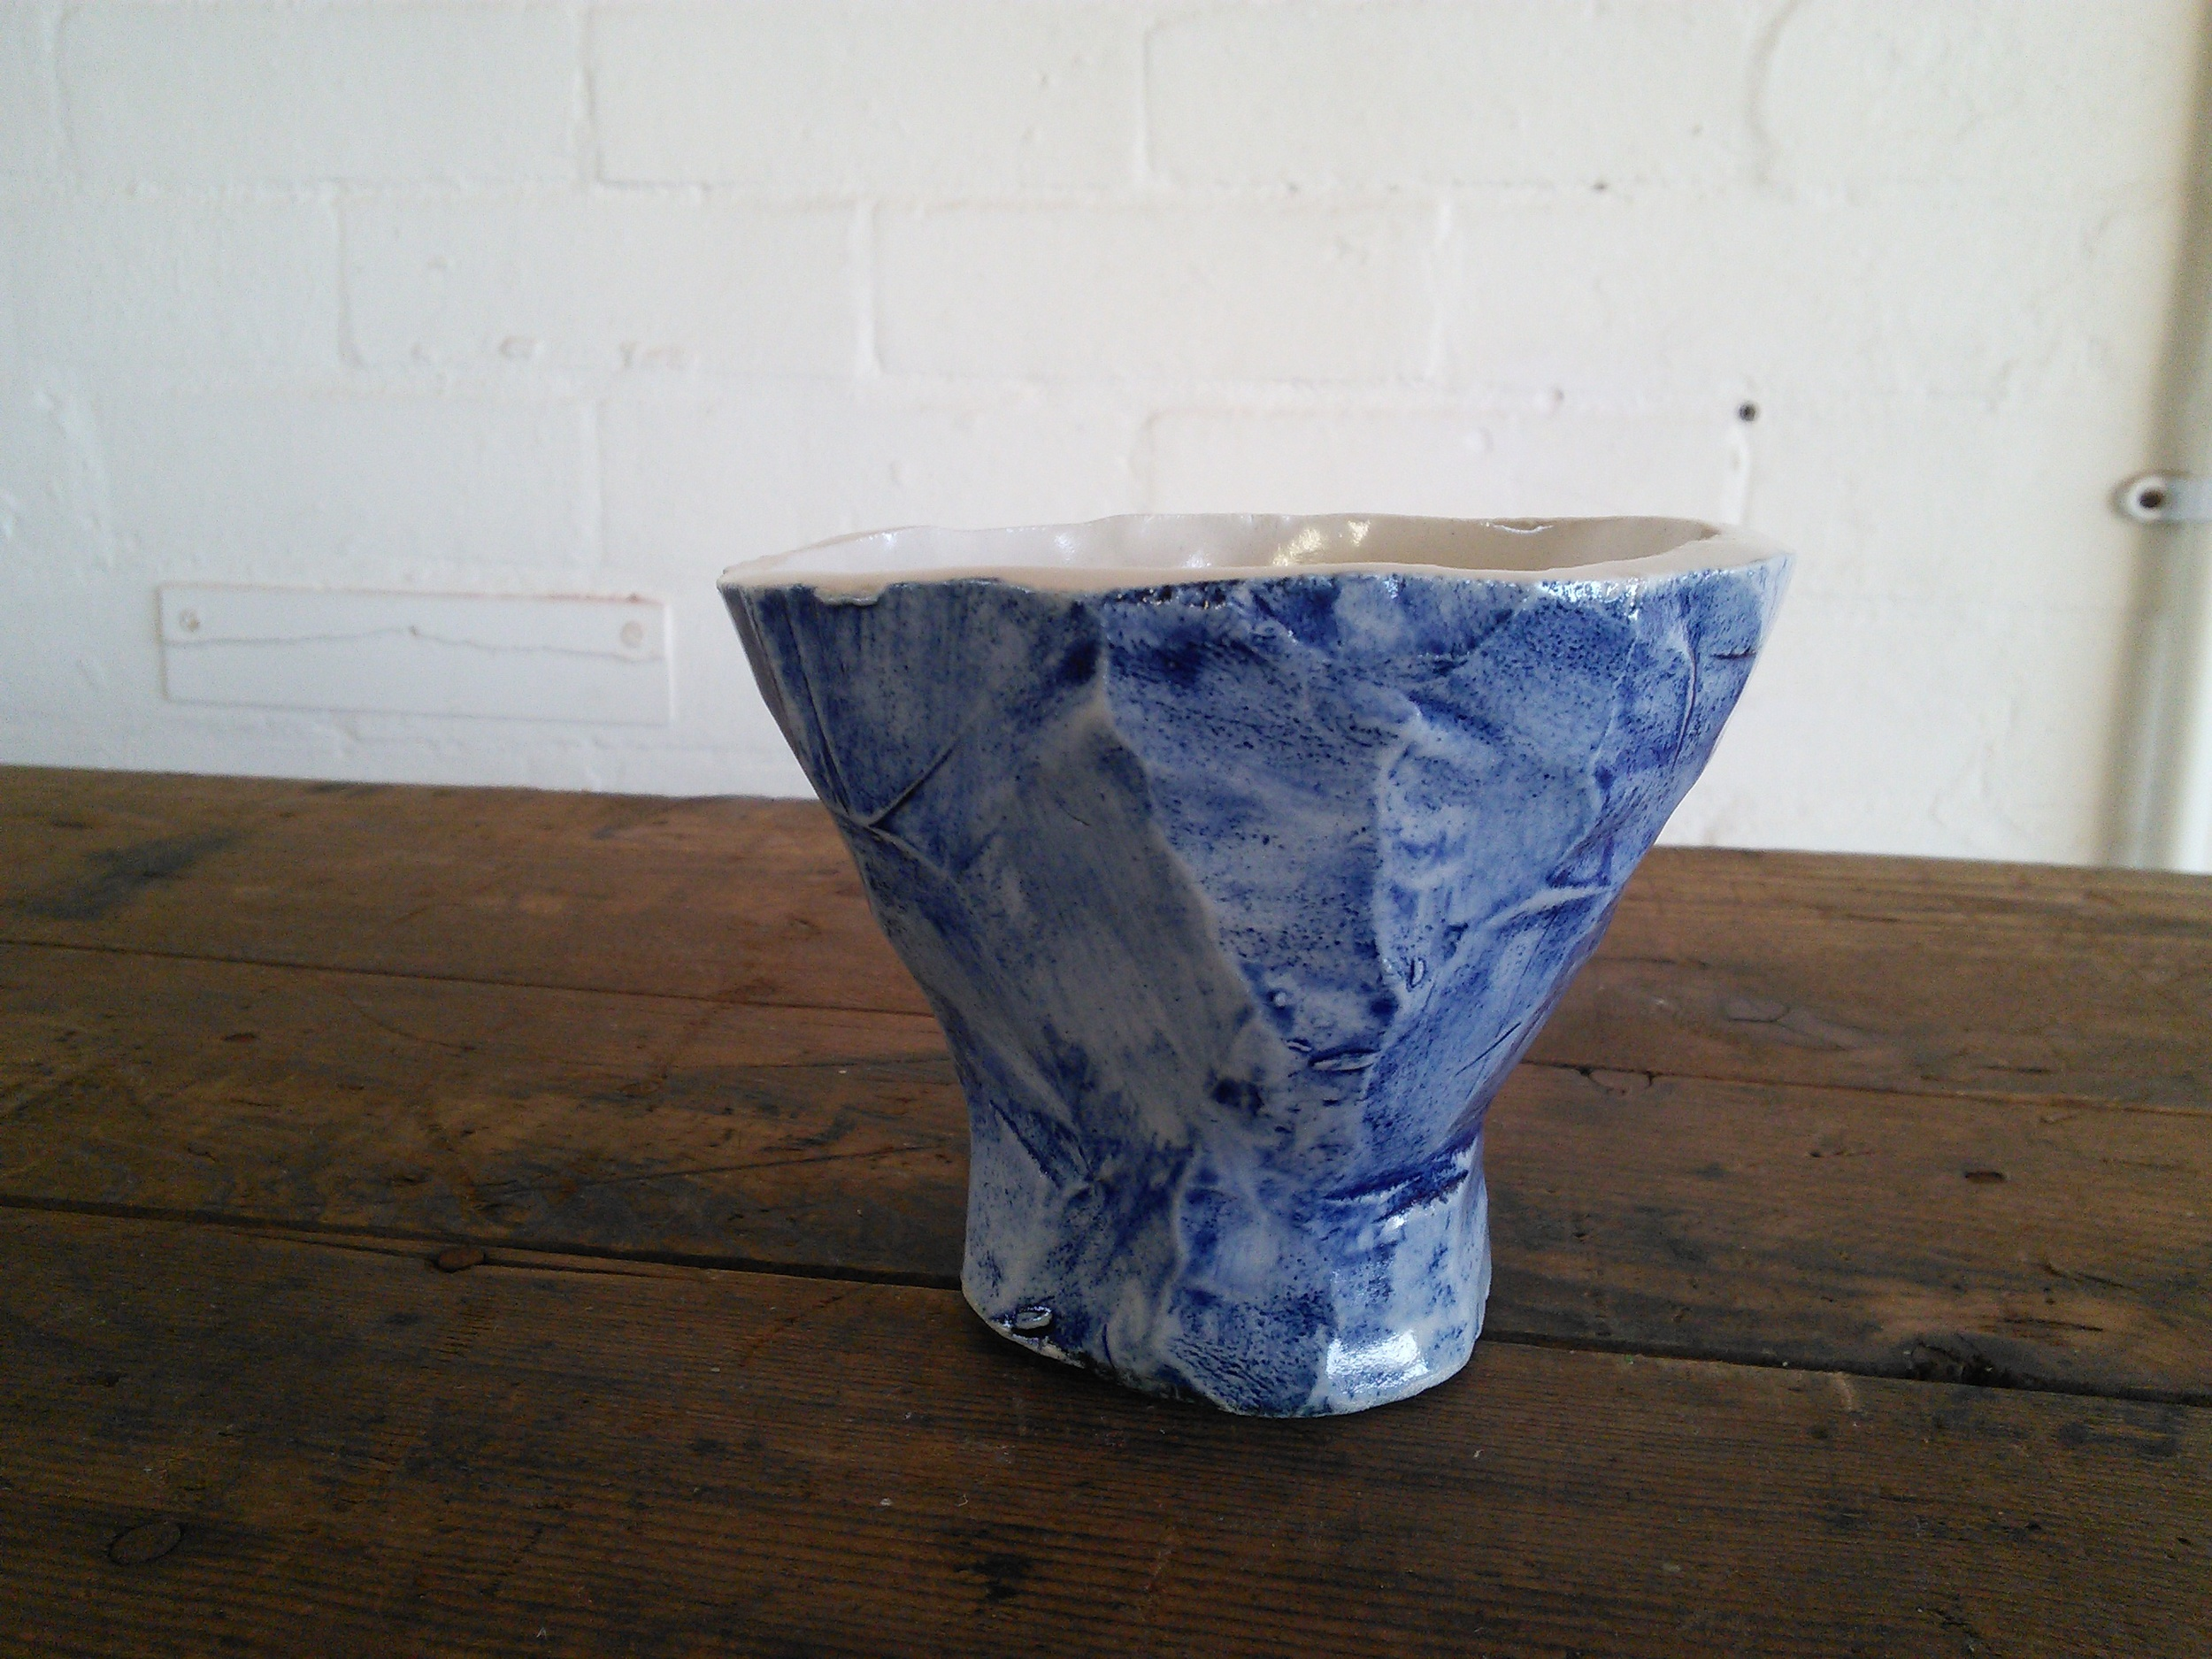 Pinched and faceted pot with cobalt wash, J